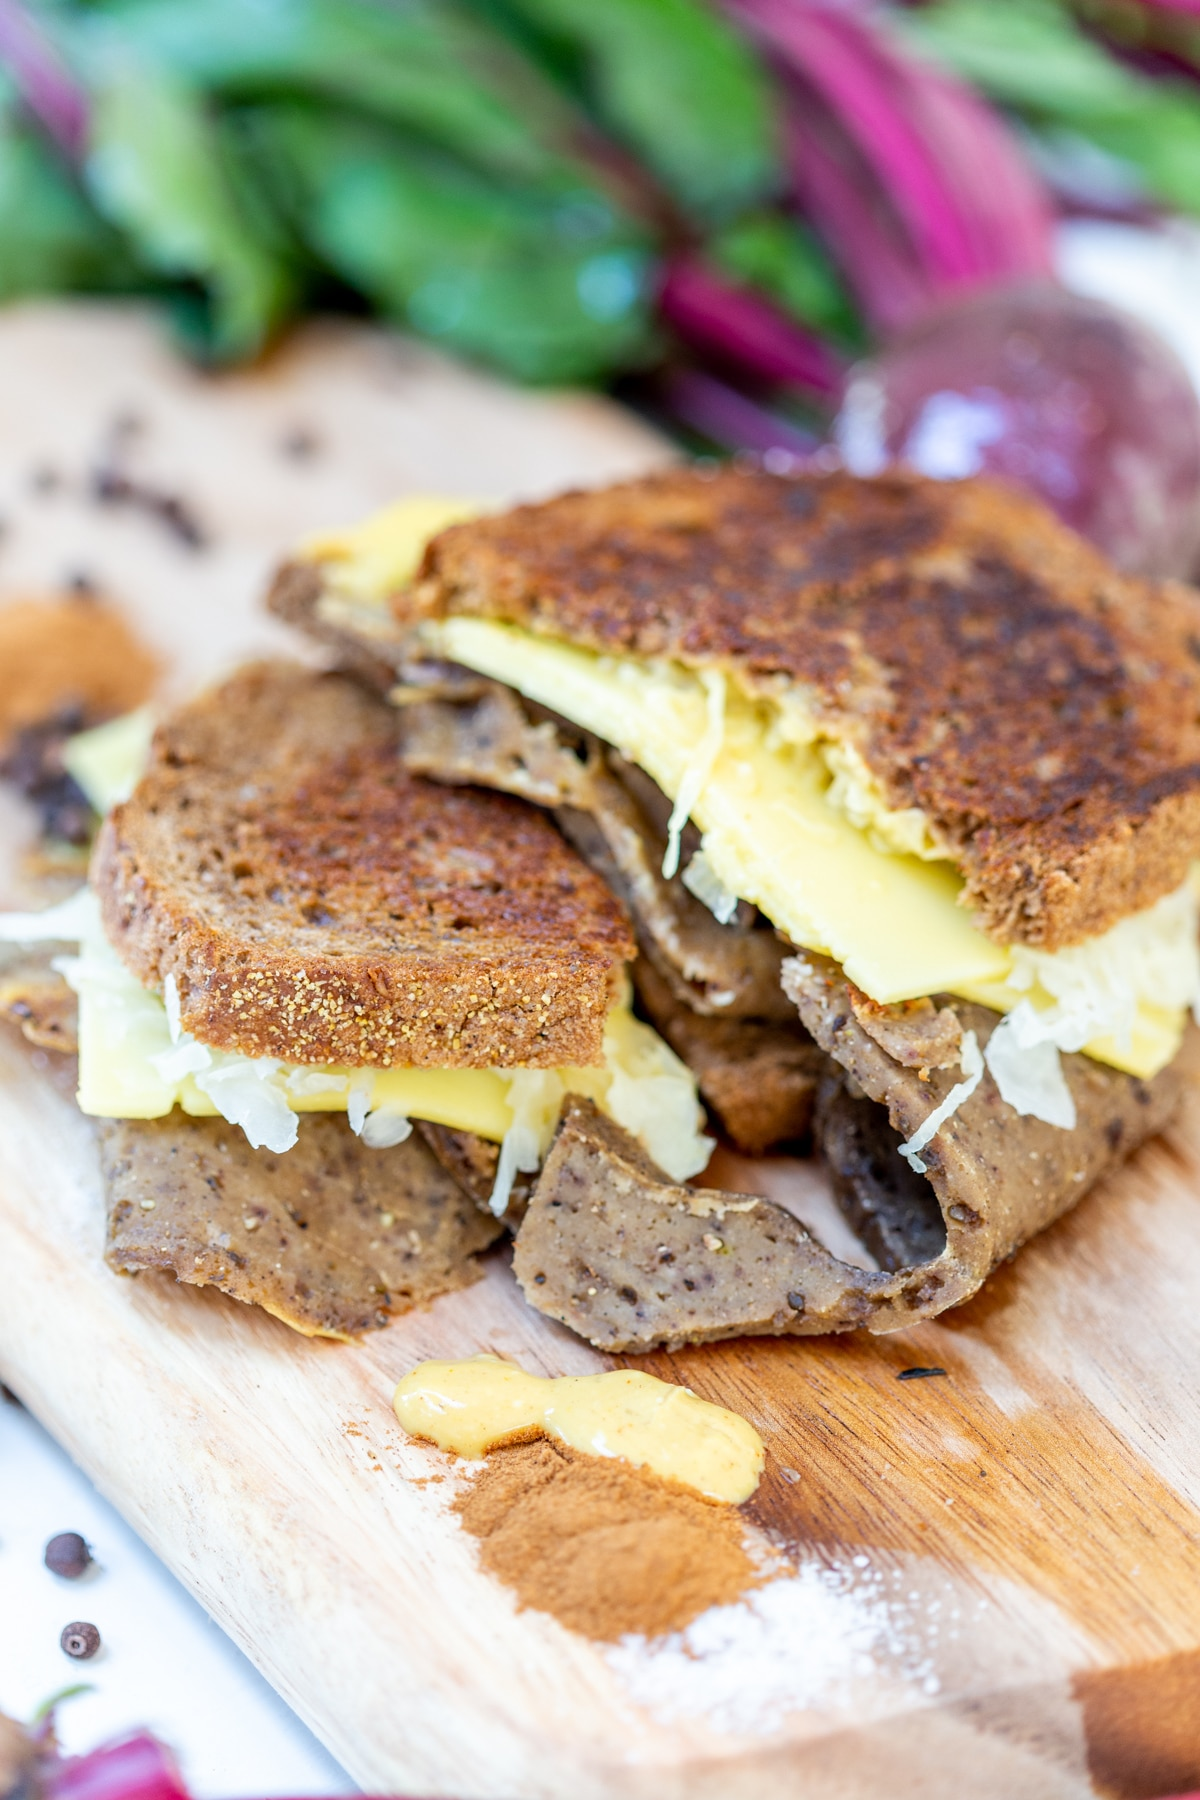 A Reuben sandwich on a wooden board with corned beef and sauerkraut falling out of the sides.